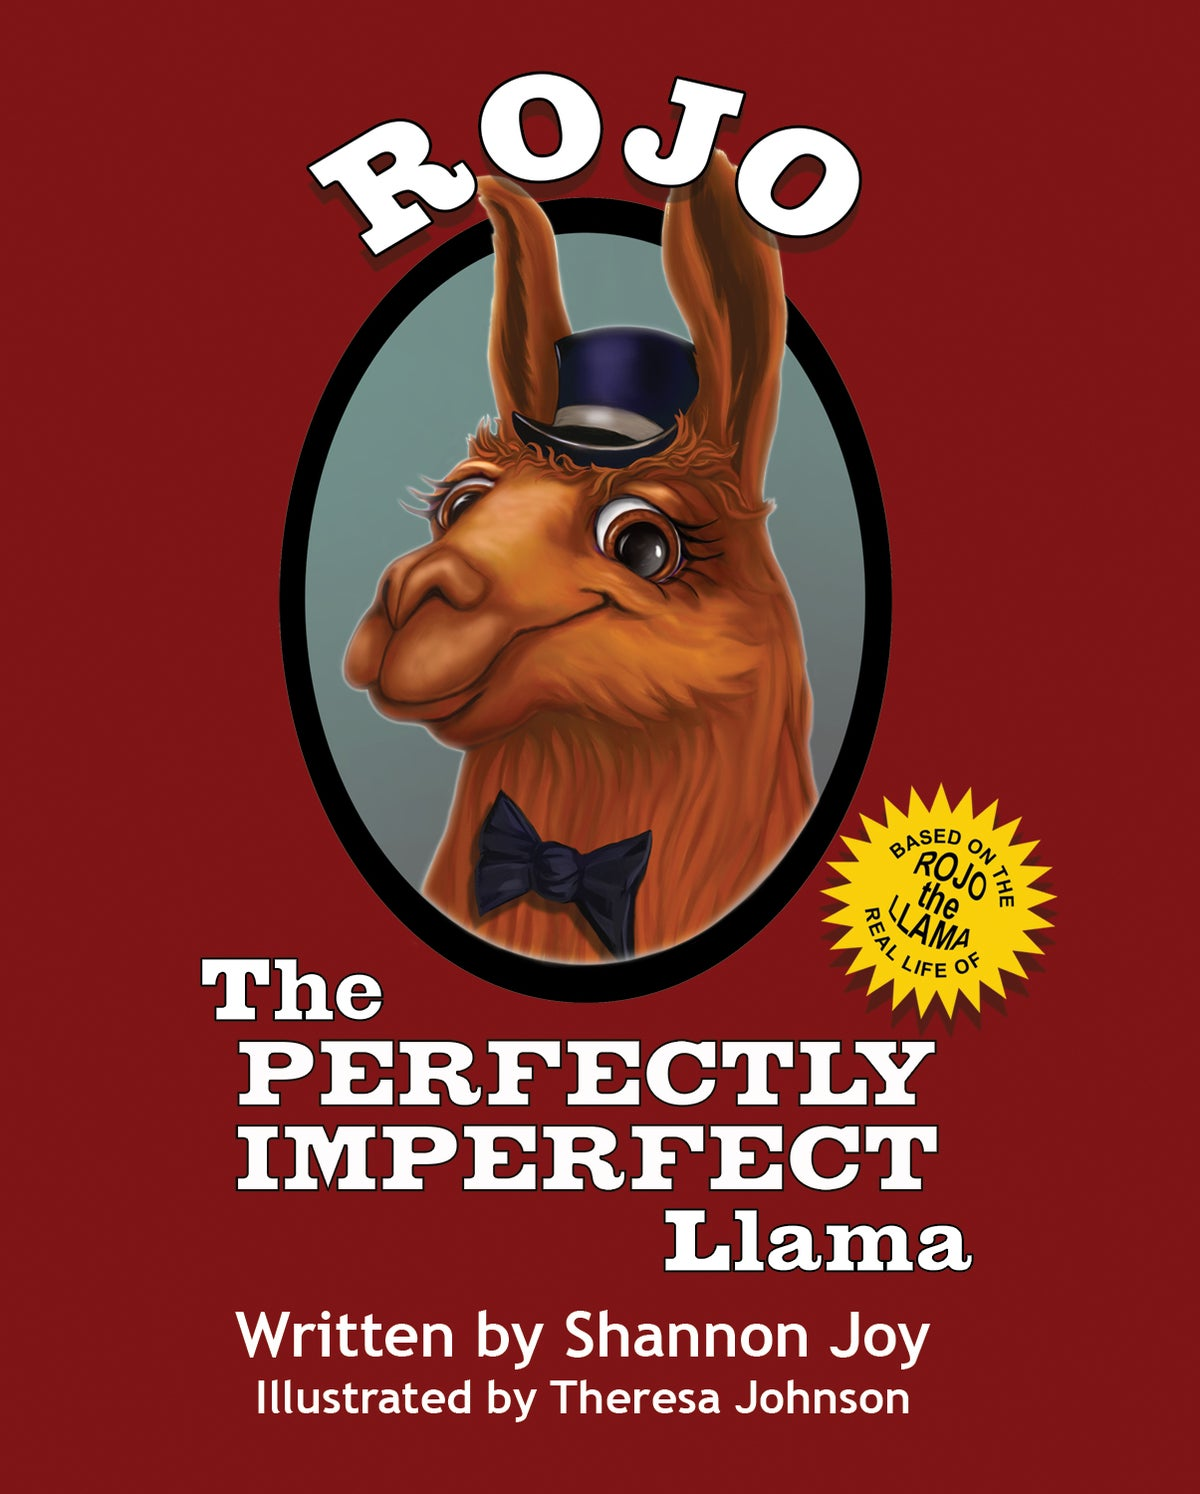 Image of Rojo, The Perfectly Imperfect Llama